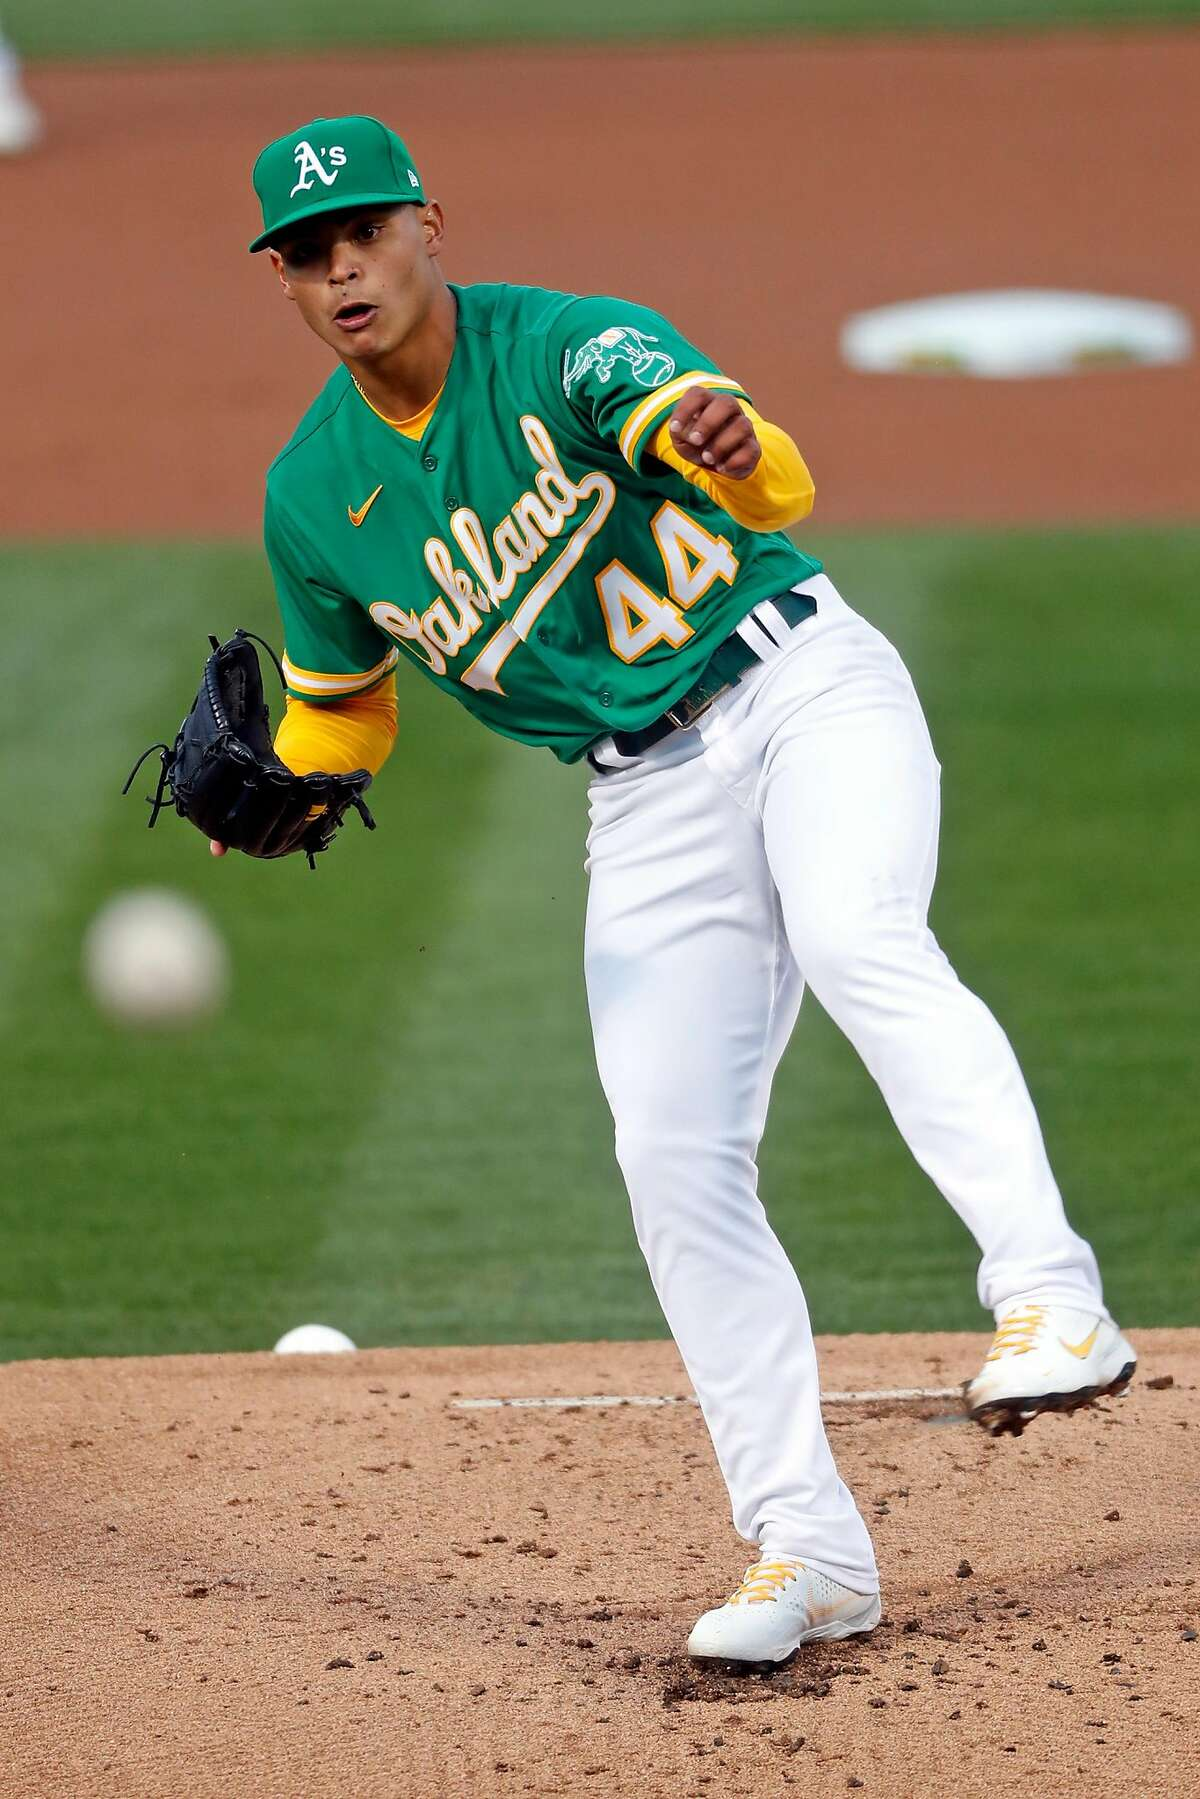 Oakland Athletics' Jesus Luzardo pitches in 1st inning against Houston Astros during MLB game at Oakland Coliseum in Oakland, Calif., on Friday, April 2, 2021.